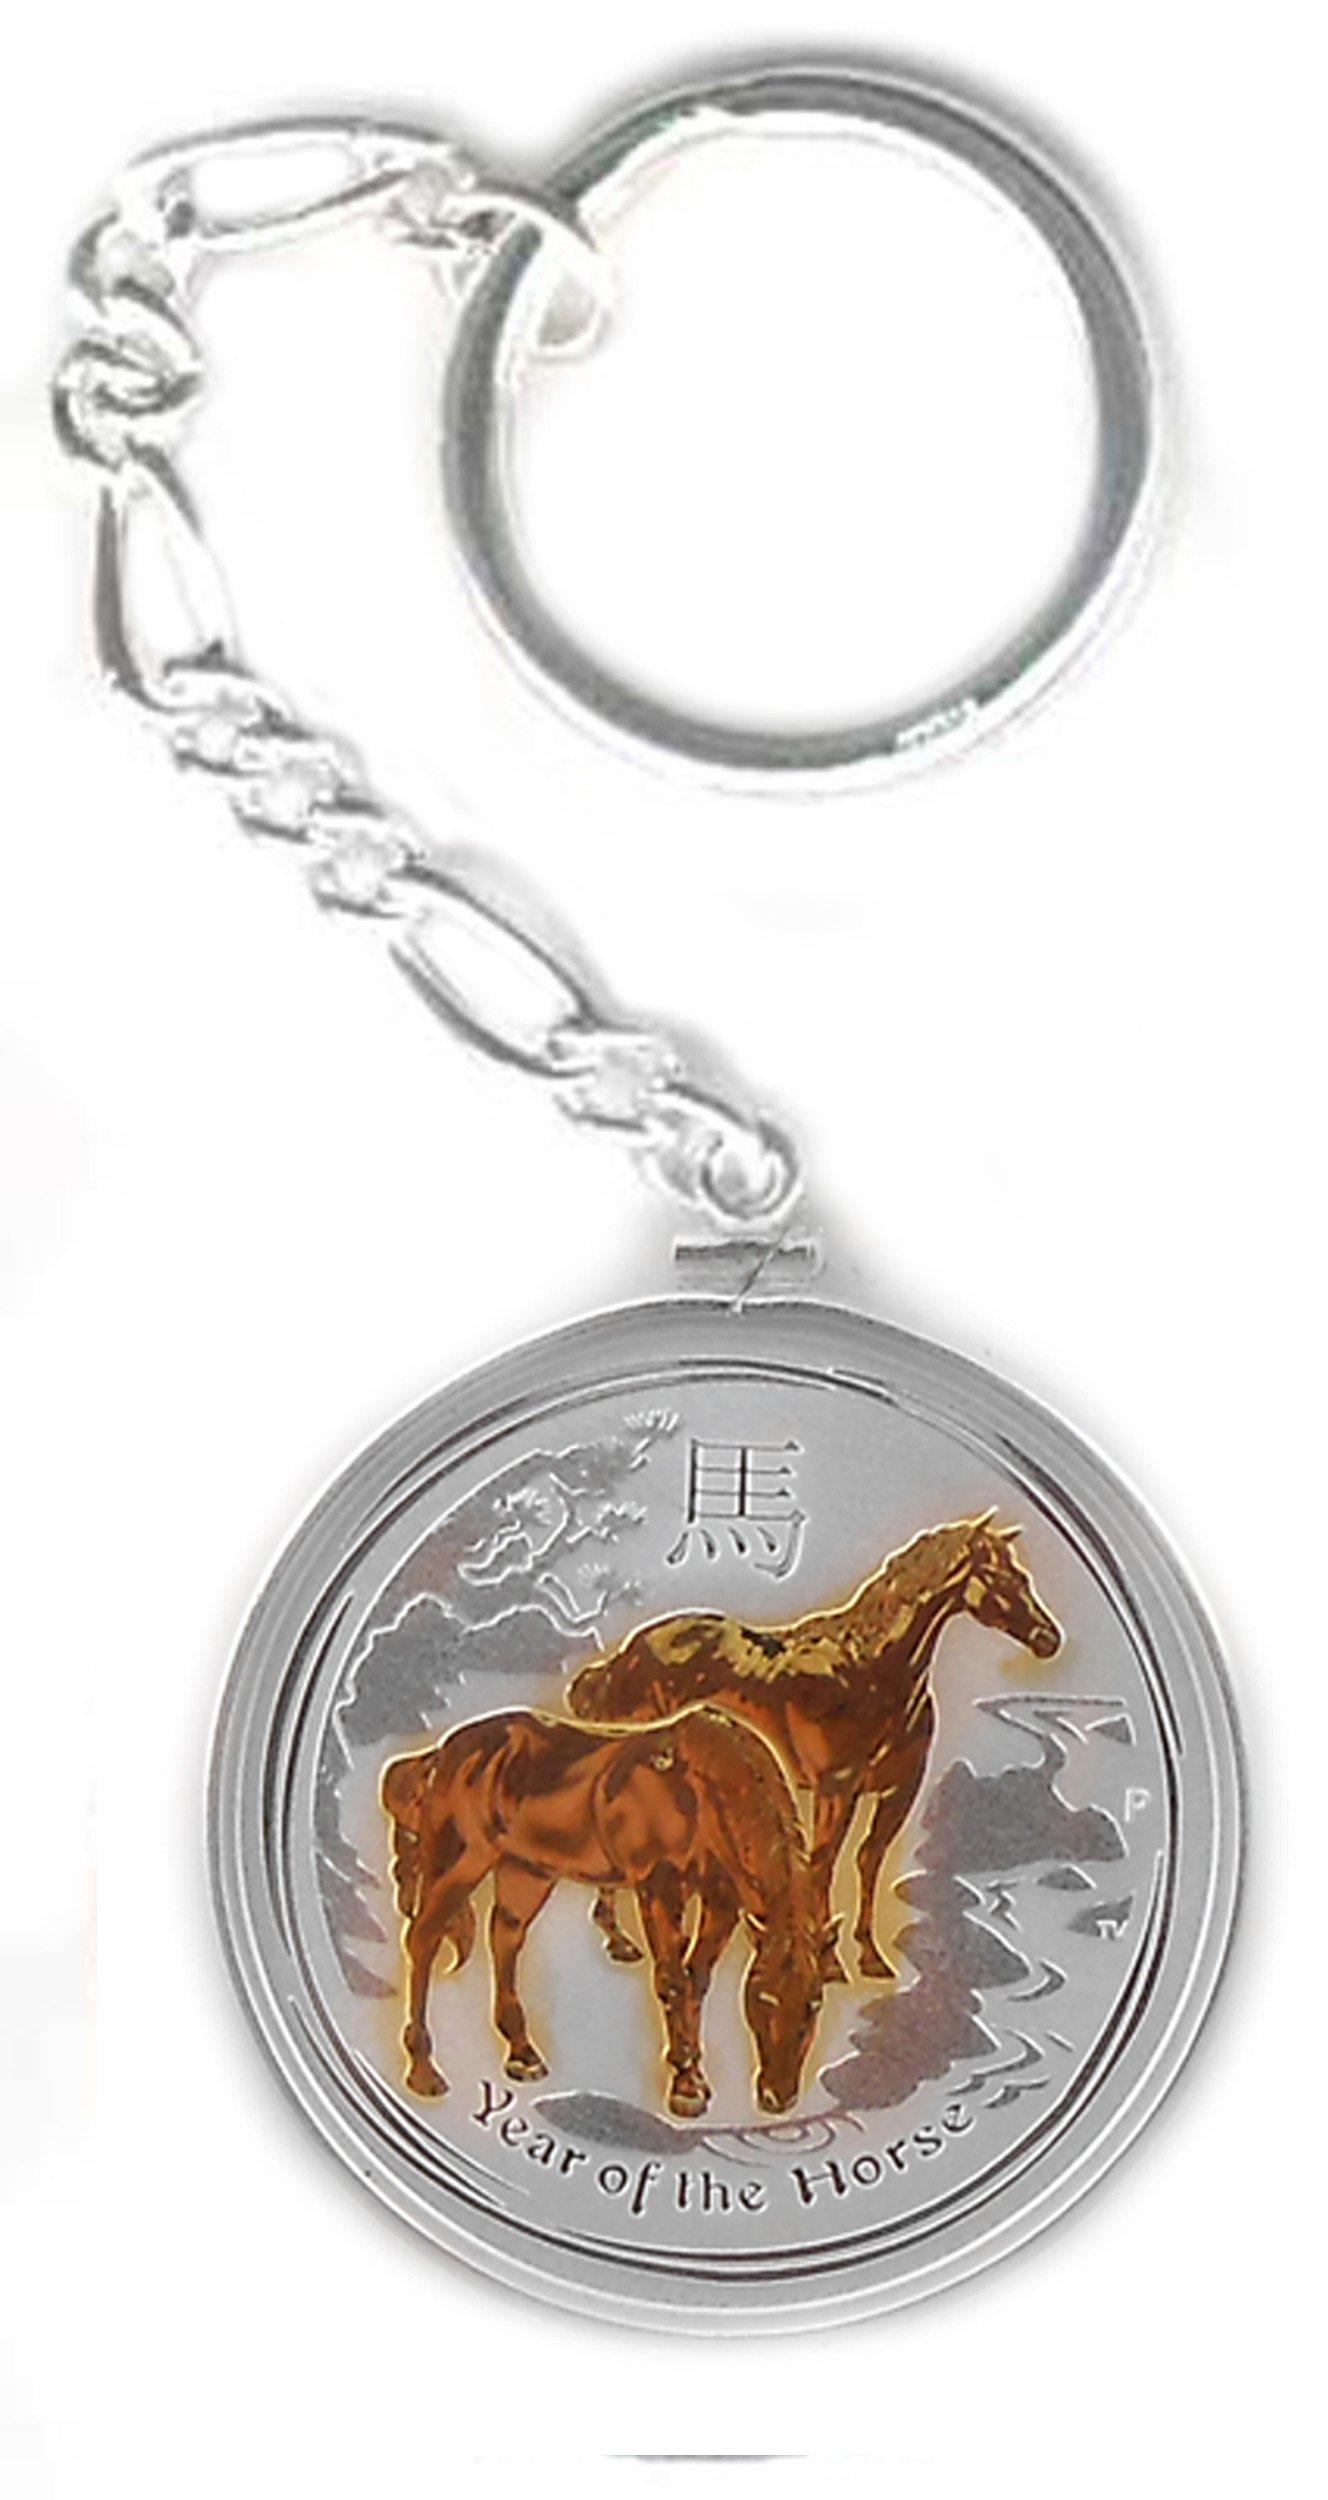 Sterling Silver 1/2 oz Year of the Horse Colorized Keychain COIN INCLUDED